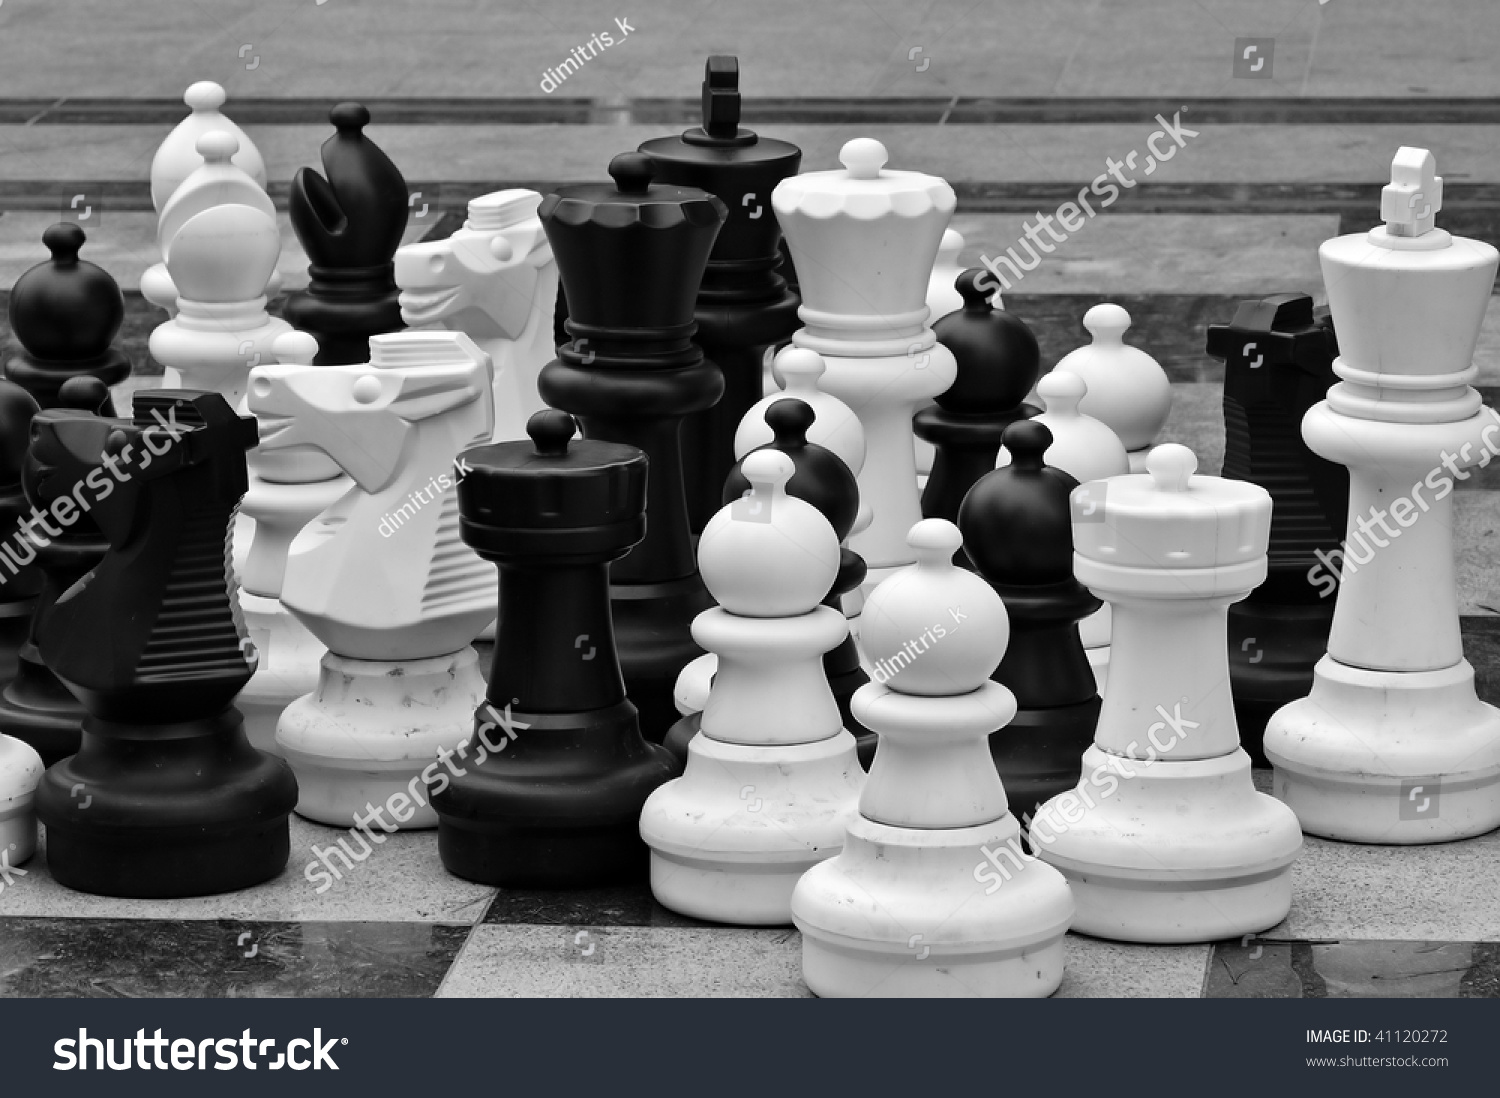 Life Size Chess Pieces And Checkered Pattern Floor Tiles